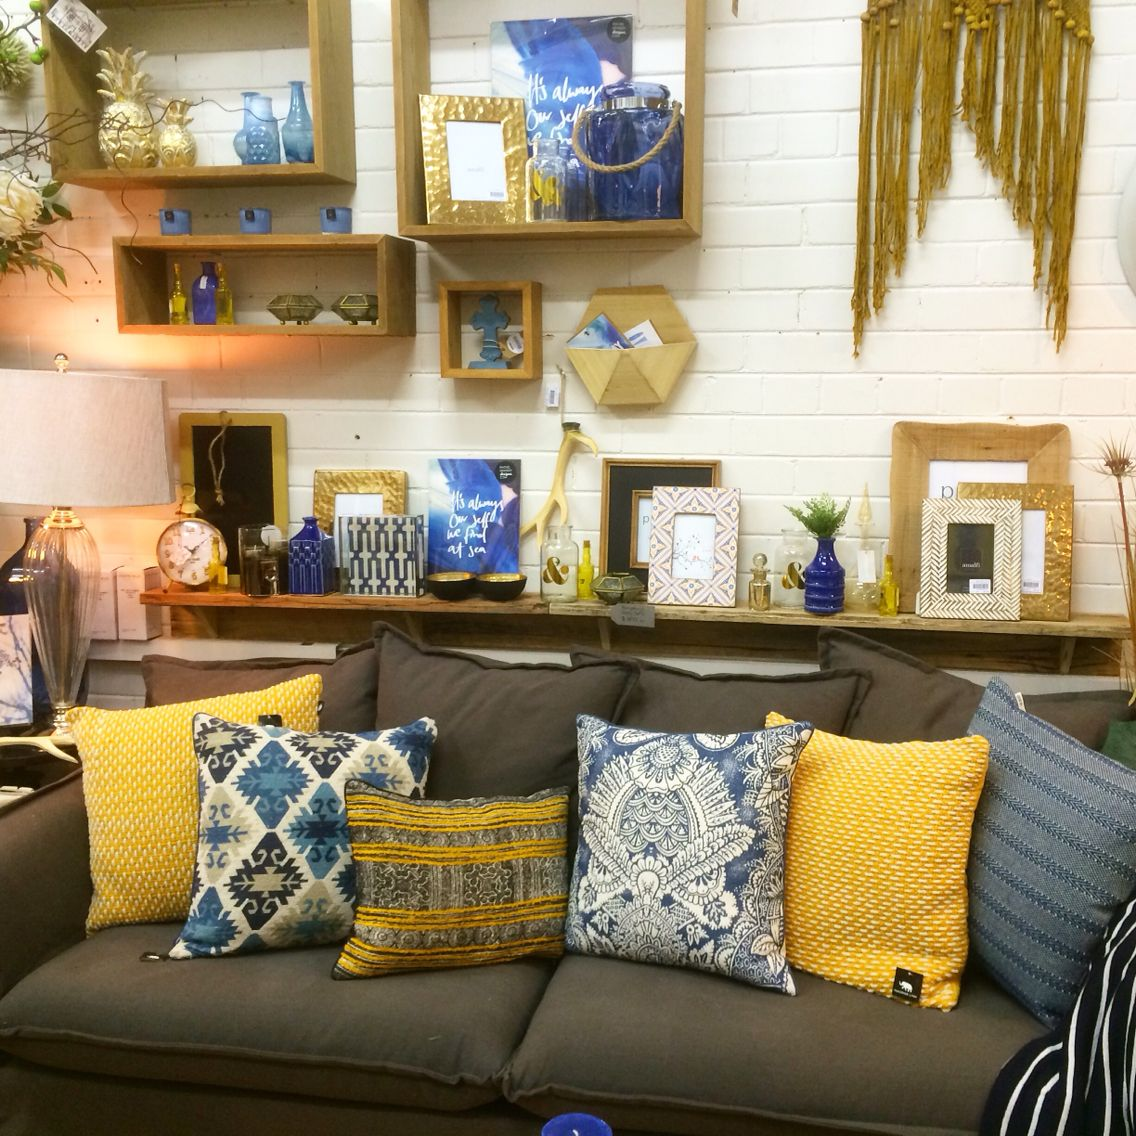 mustard and indigo shop display home decor and interiors at lavish abode in lilydale - Home Decor Melbourne